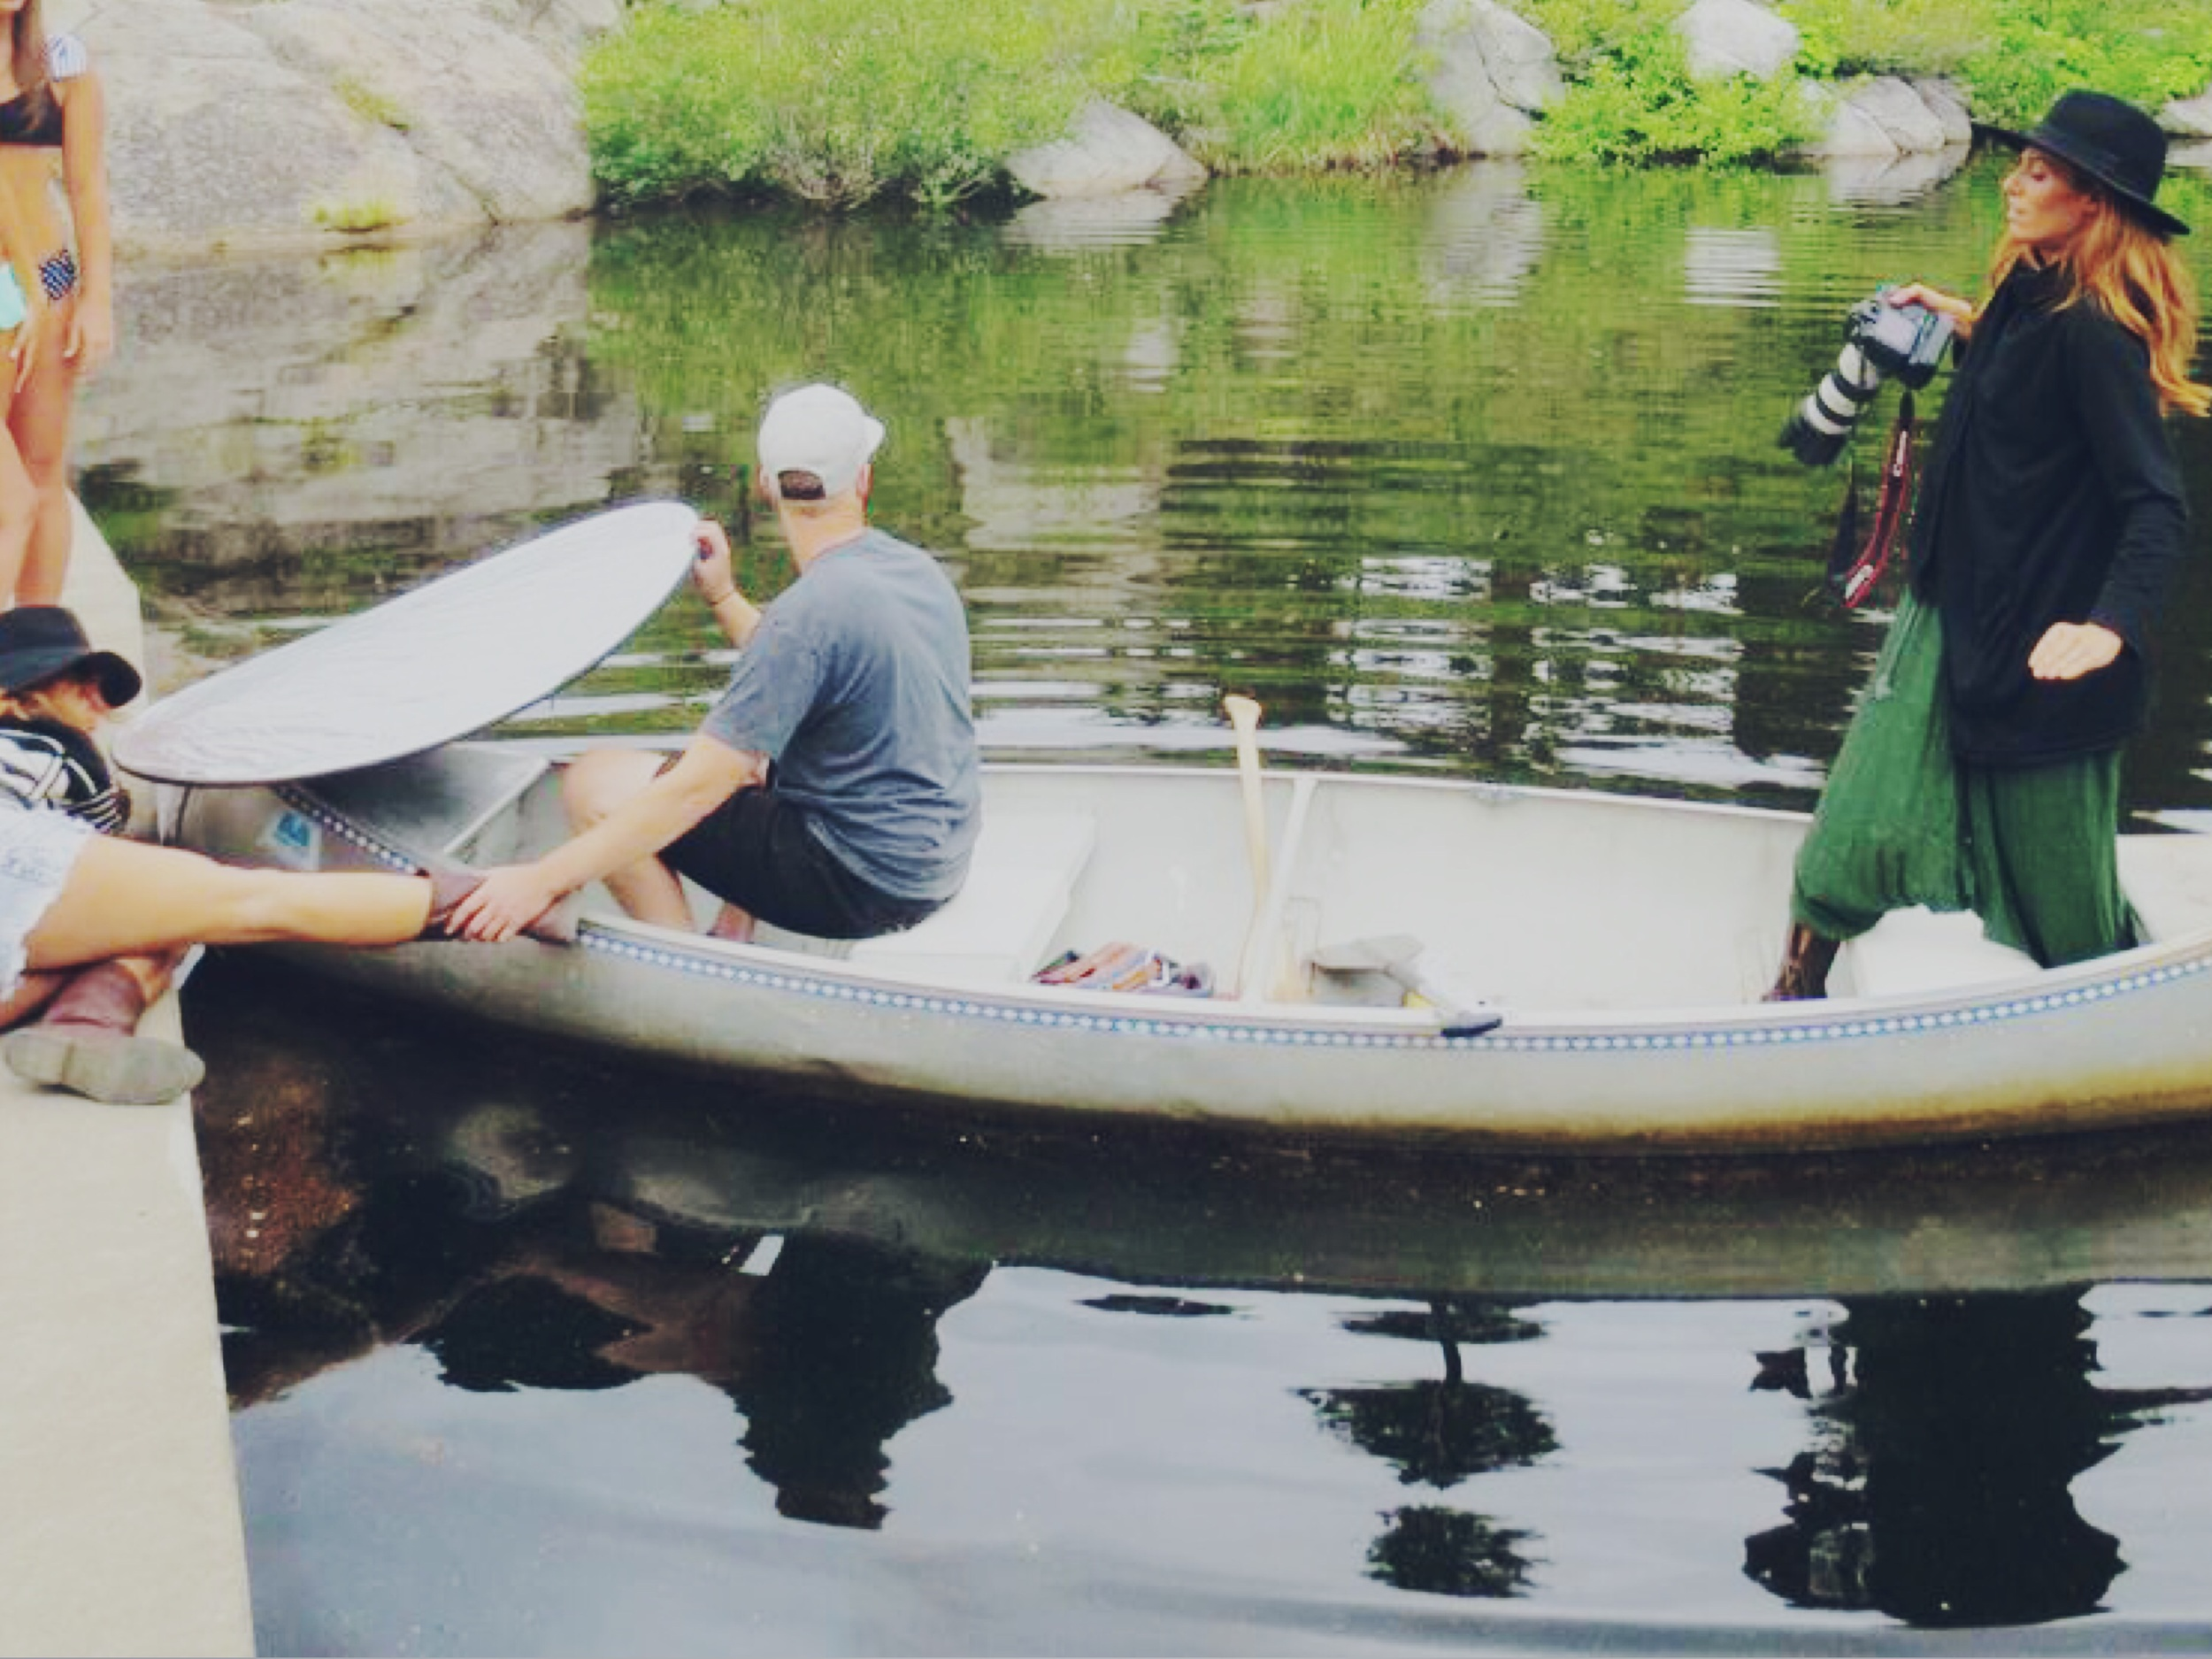 Shooting from said canoe + Austin using Antonia's leg to steer.